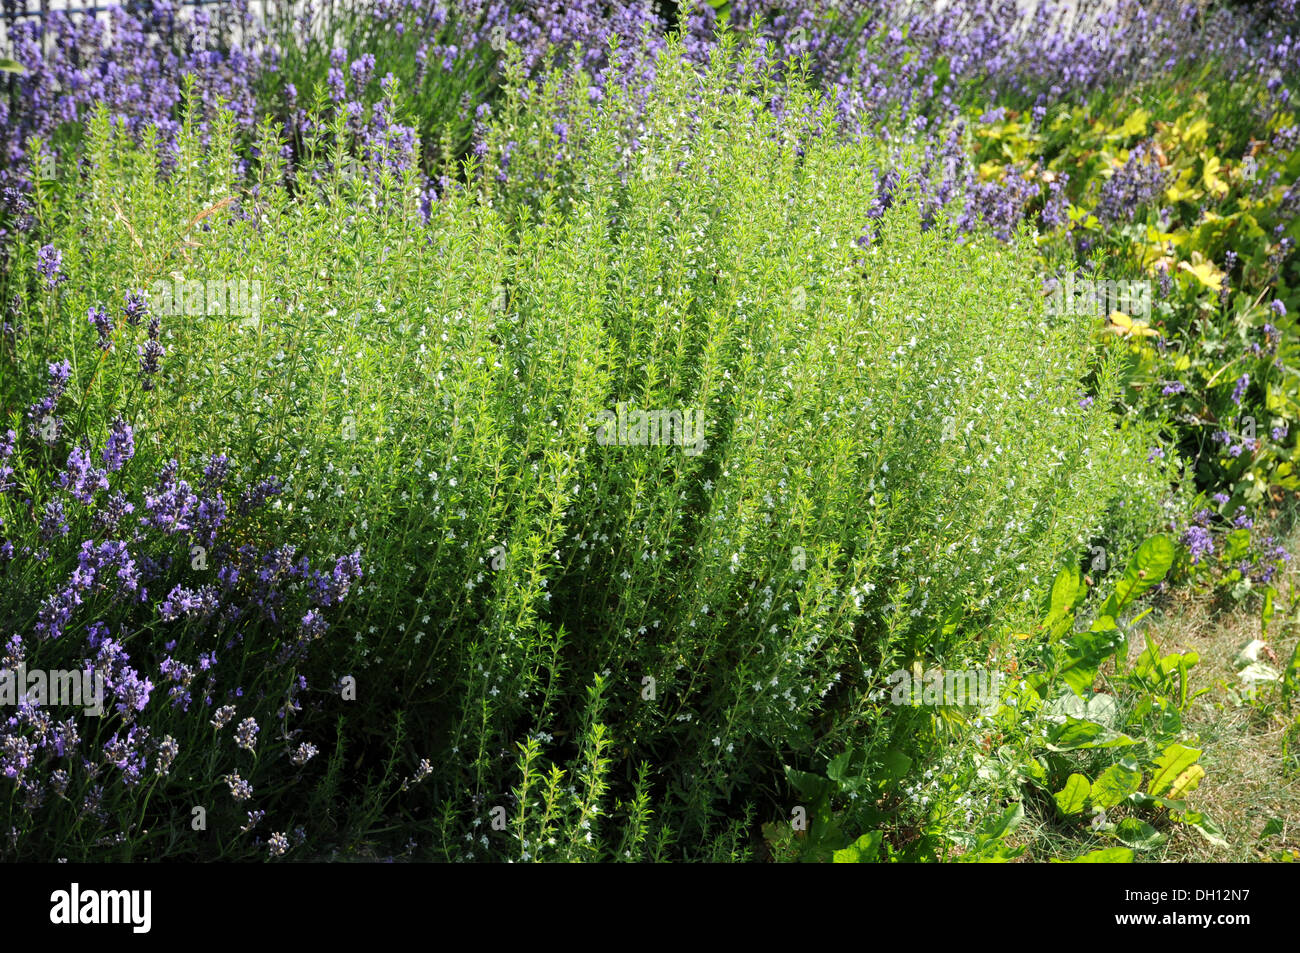 Winter Savory - Stock Image